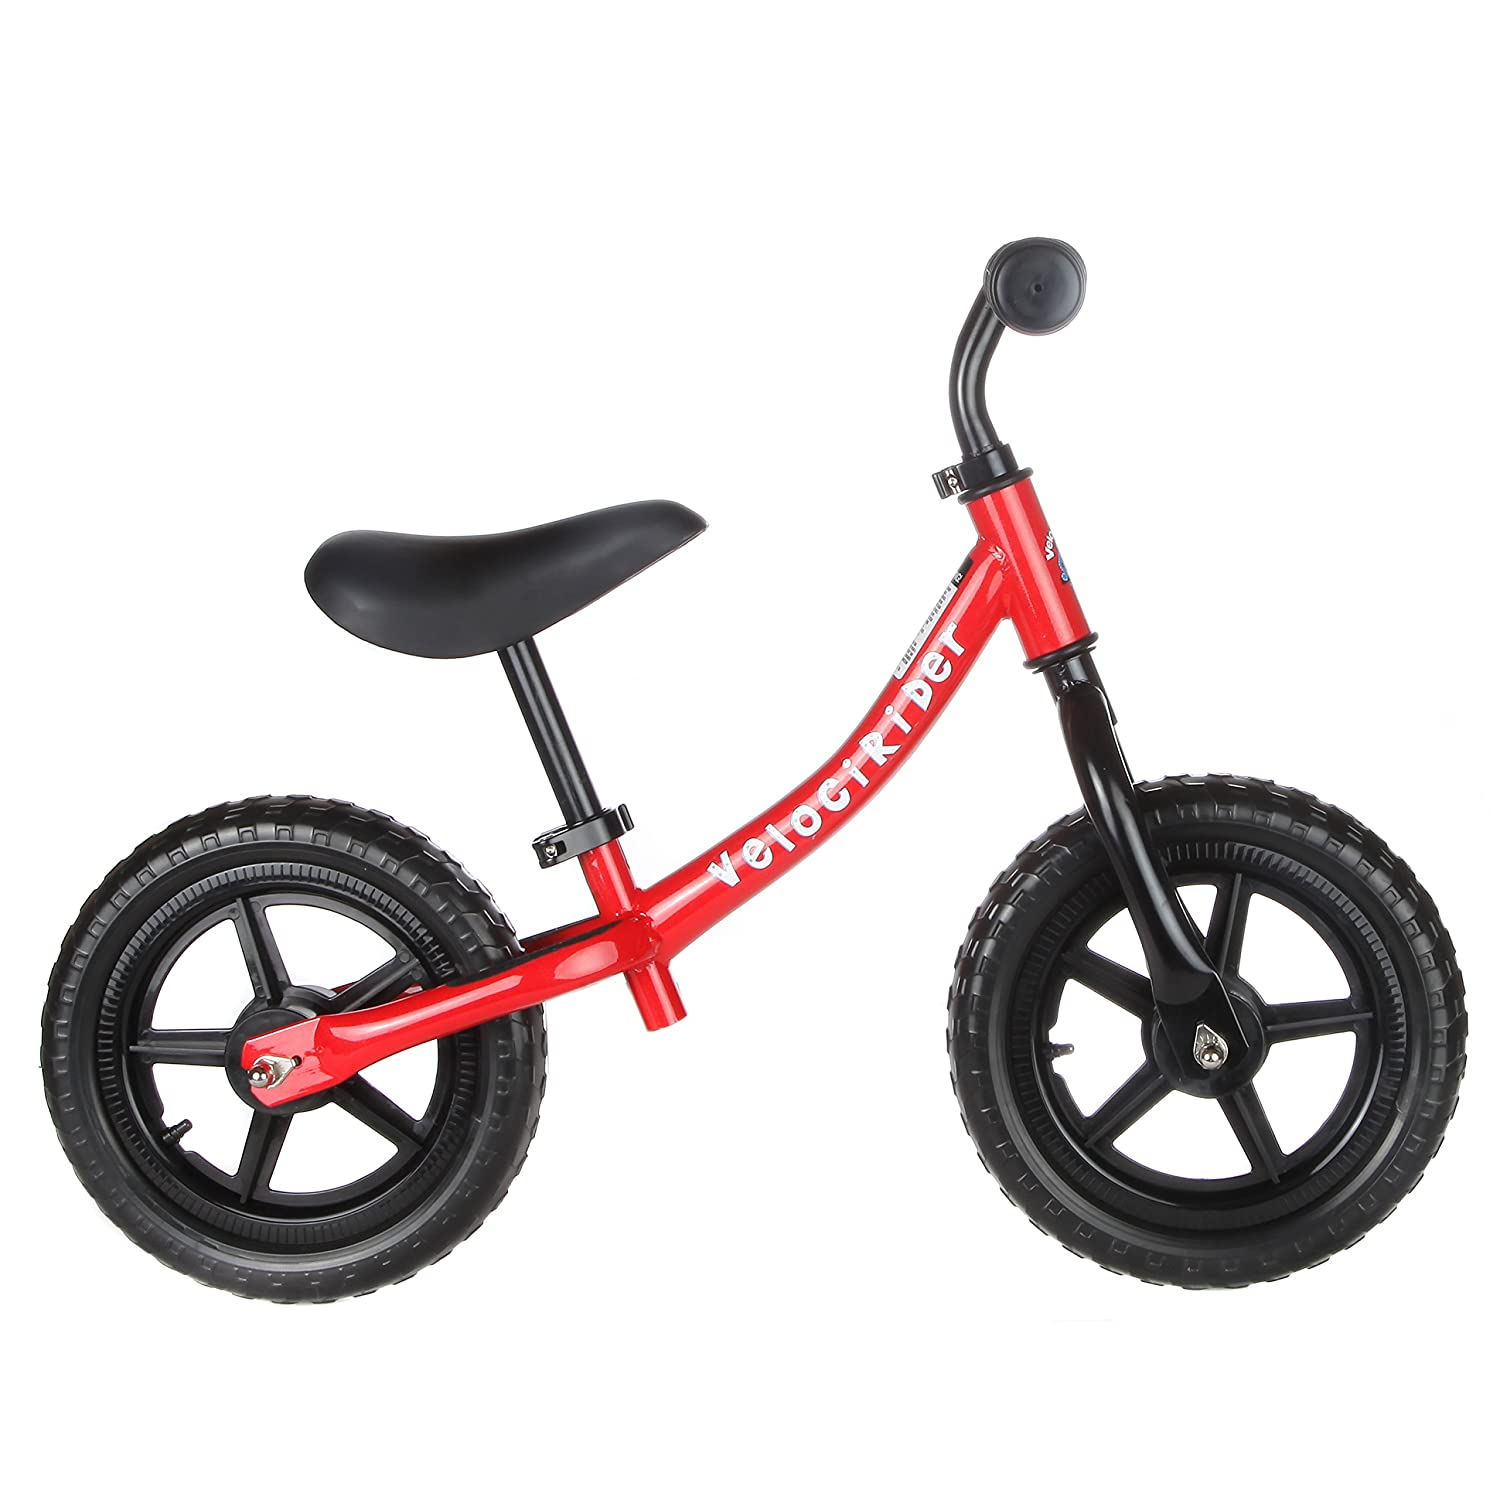 Best Balance Bike for Kids & Toddlers - Boys & Girls Self Balancing Bicycle with No Pedals is Perfect for Training Your 18 Month Old Child - Classic Run Bikes for Balance Training Fun & Easy (Red) Teddy Shake